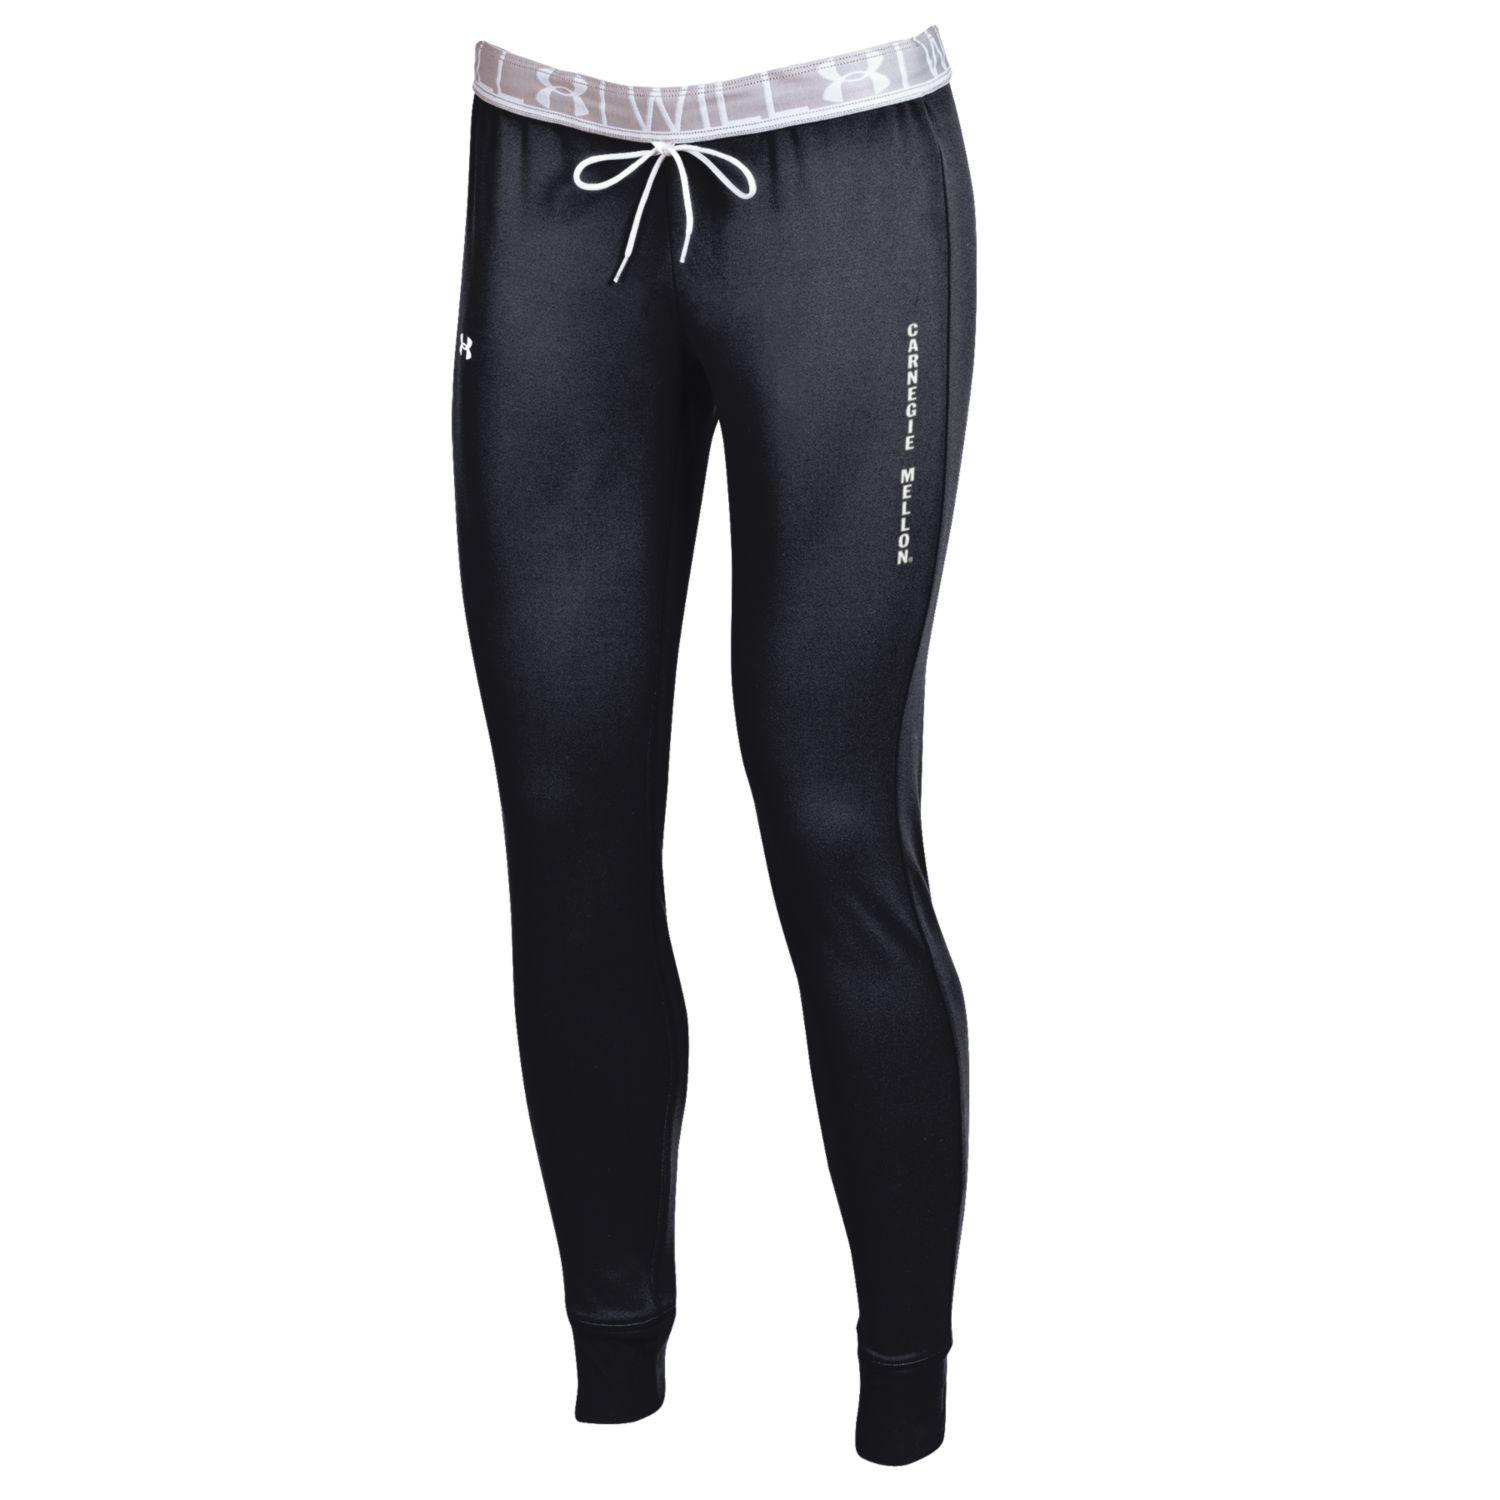 Under Armour Compression Pants: Black